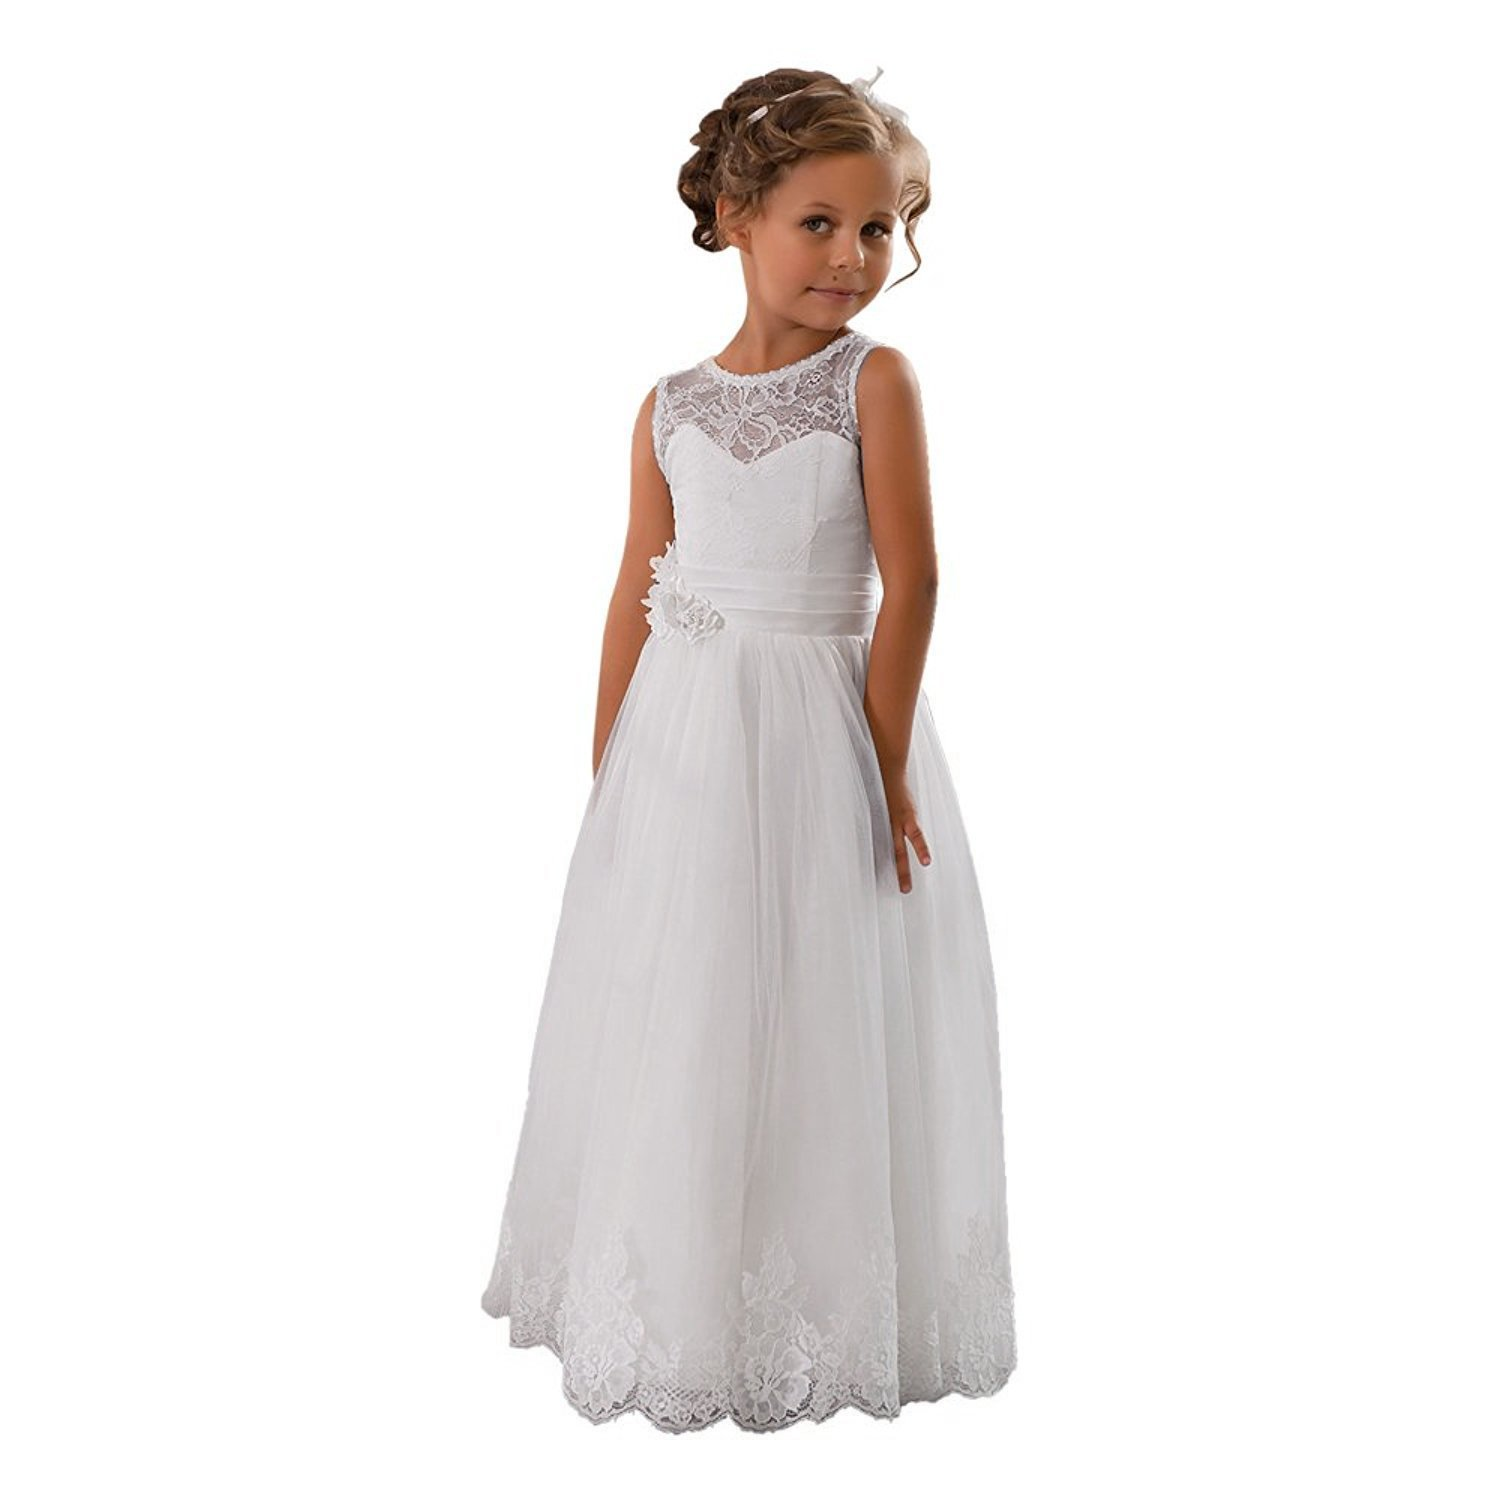 Lace Embellished A-Line Sleeveless Girls Wedding Party Dresses